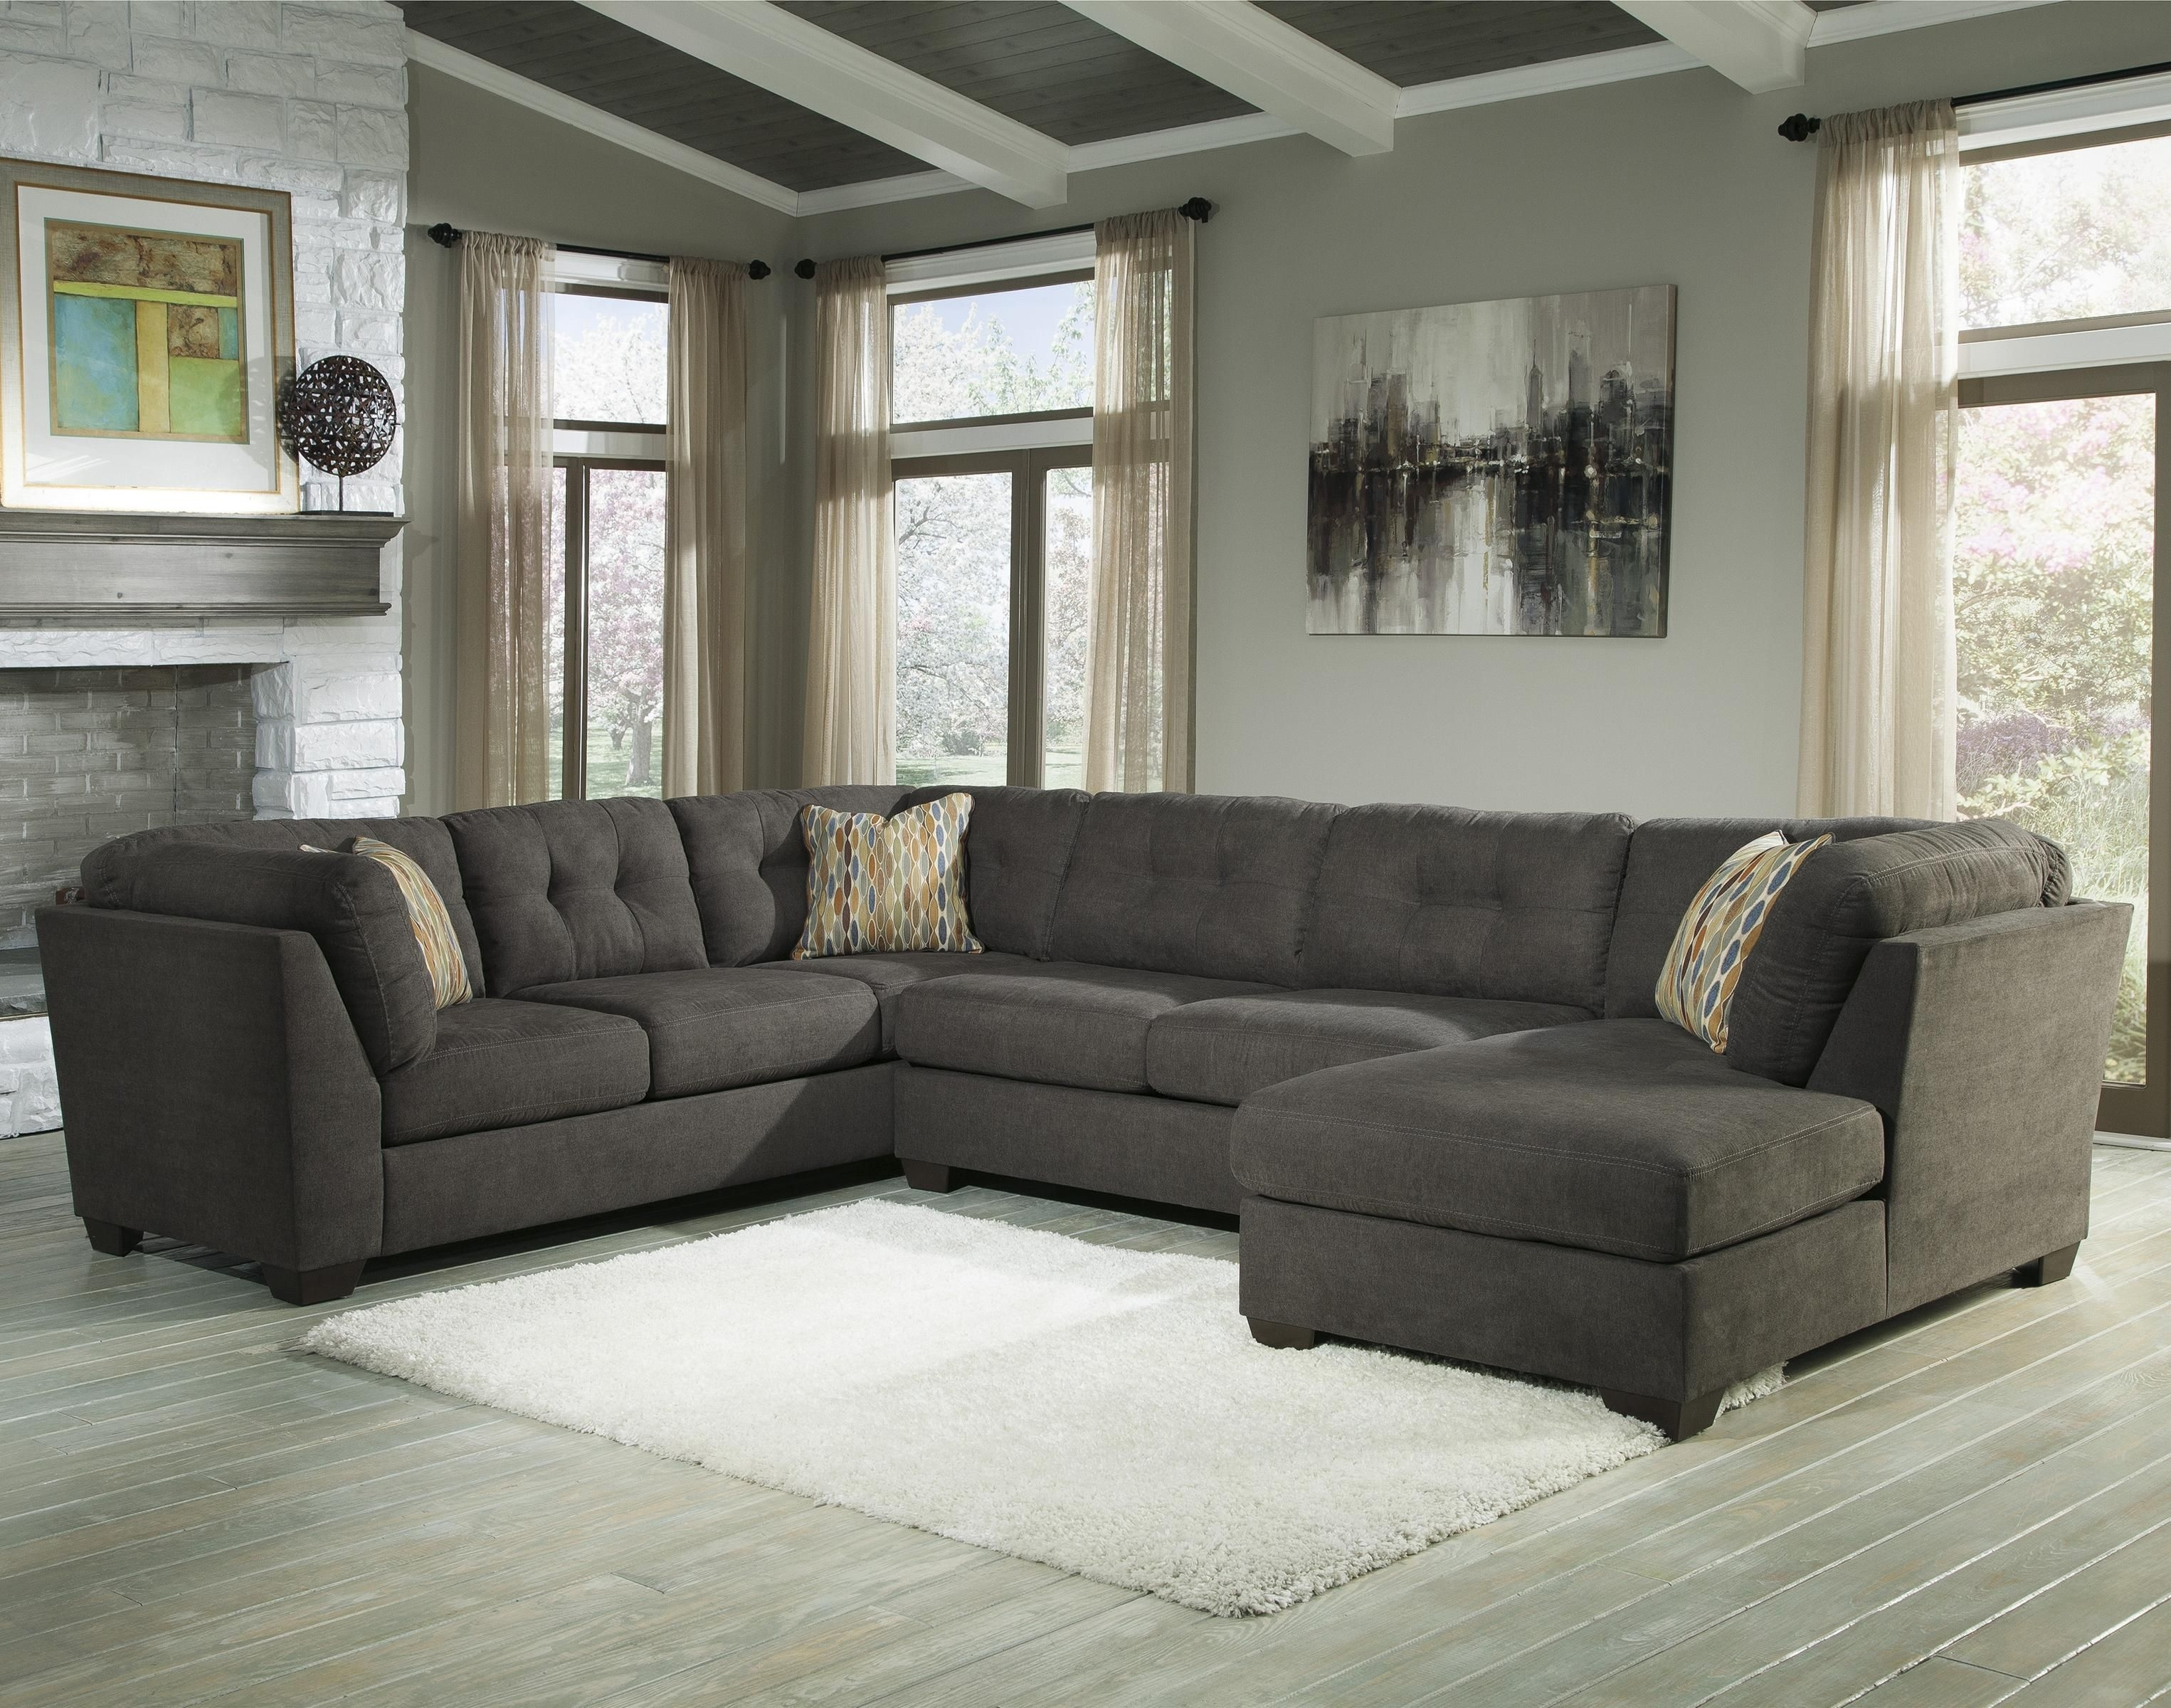 Delta City – Steel 3 Piece Modular Sectional With Right Chaise For Nico Grey Sectionals With Left Facing Storage Chaise (Image 7 of 25)